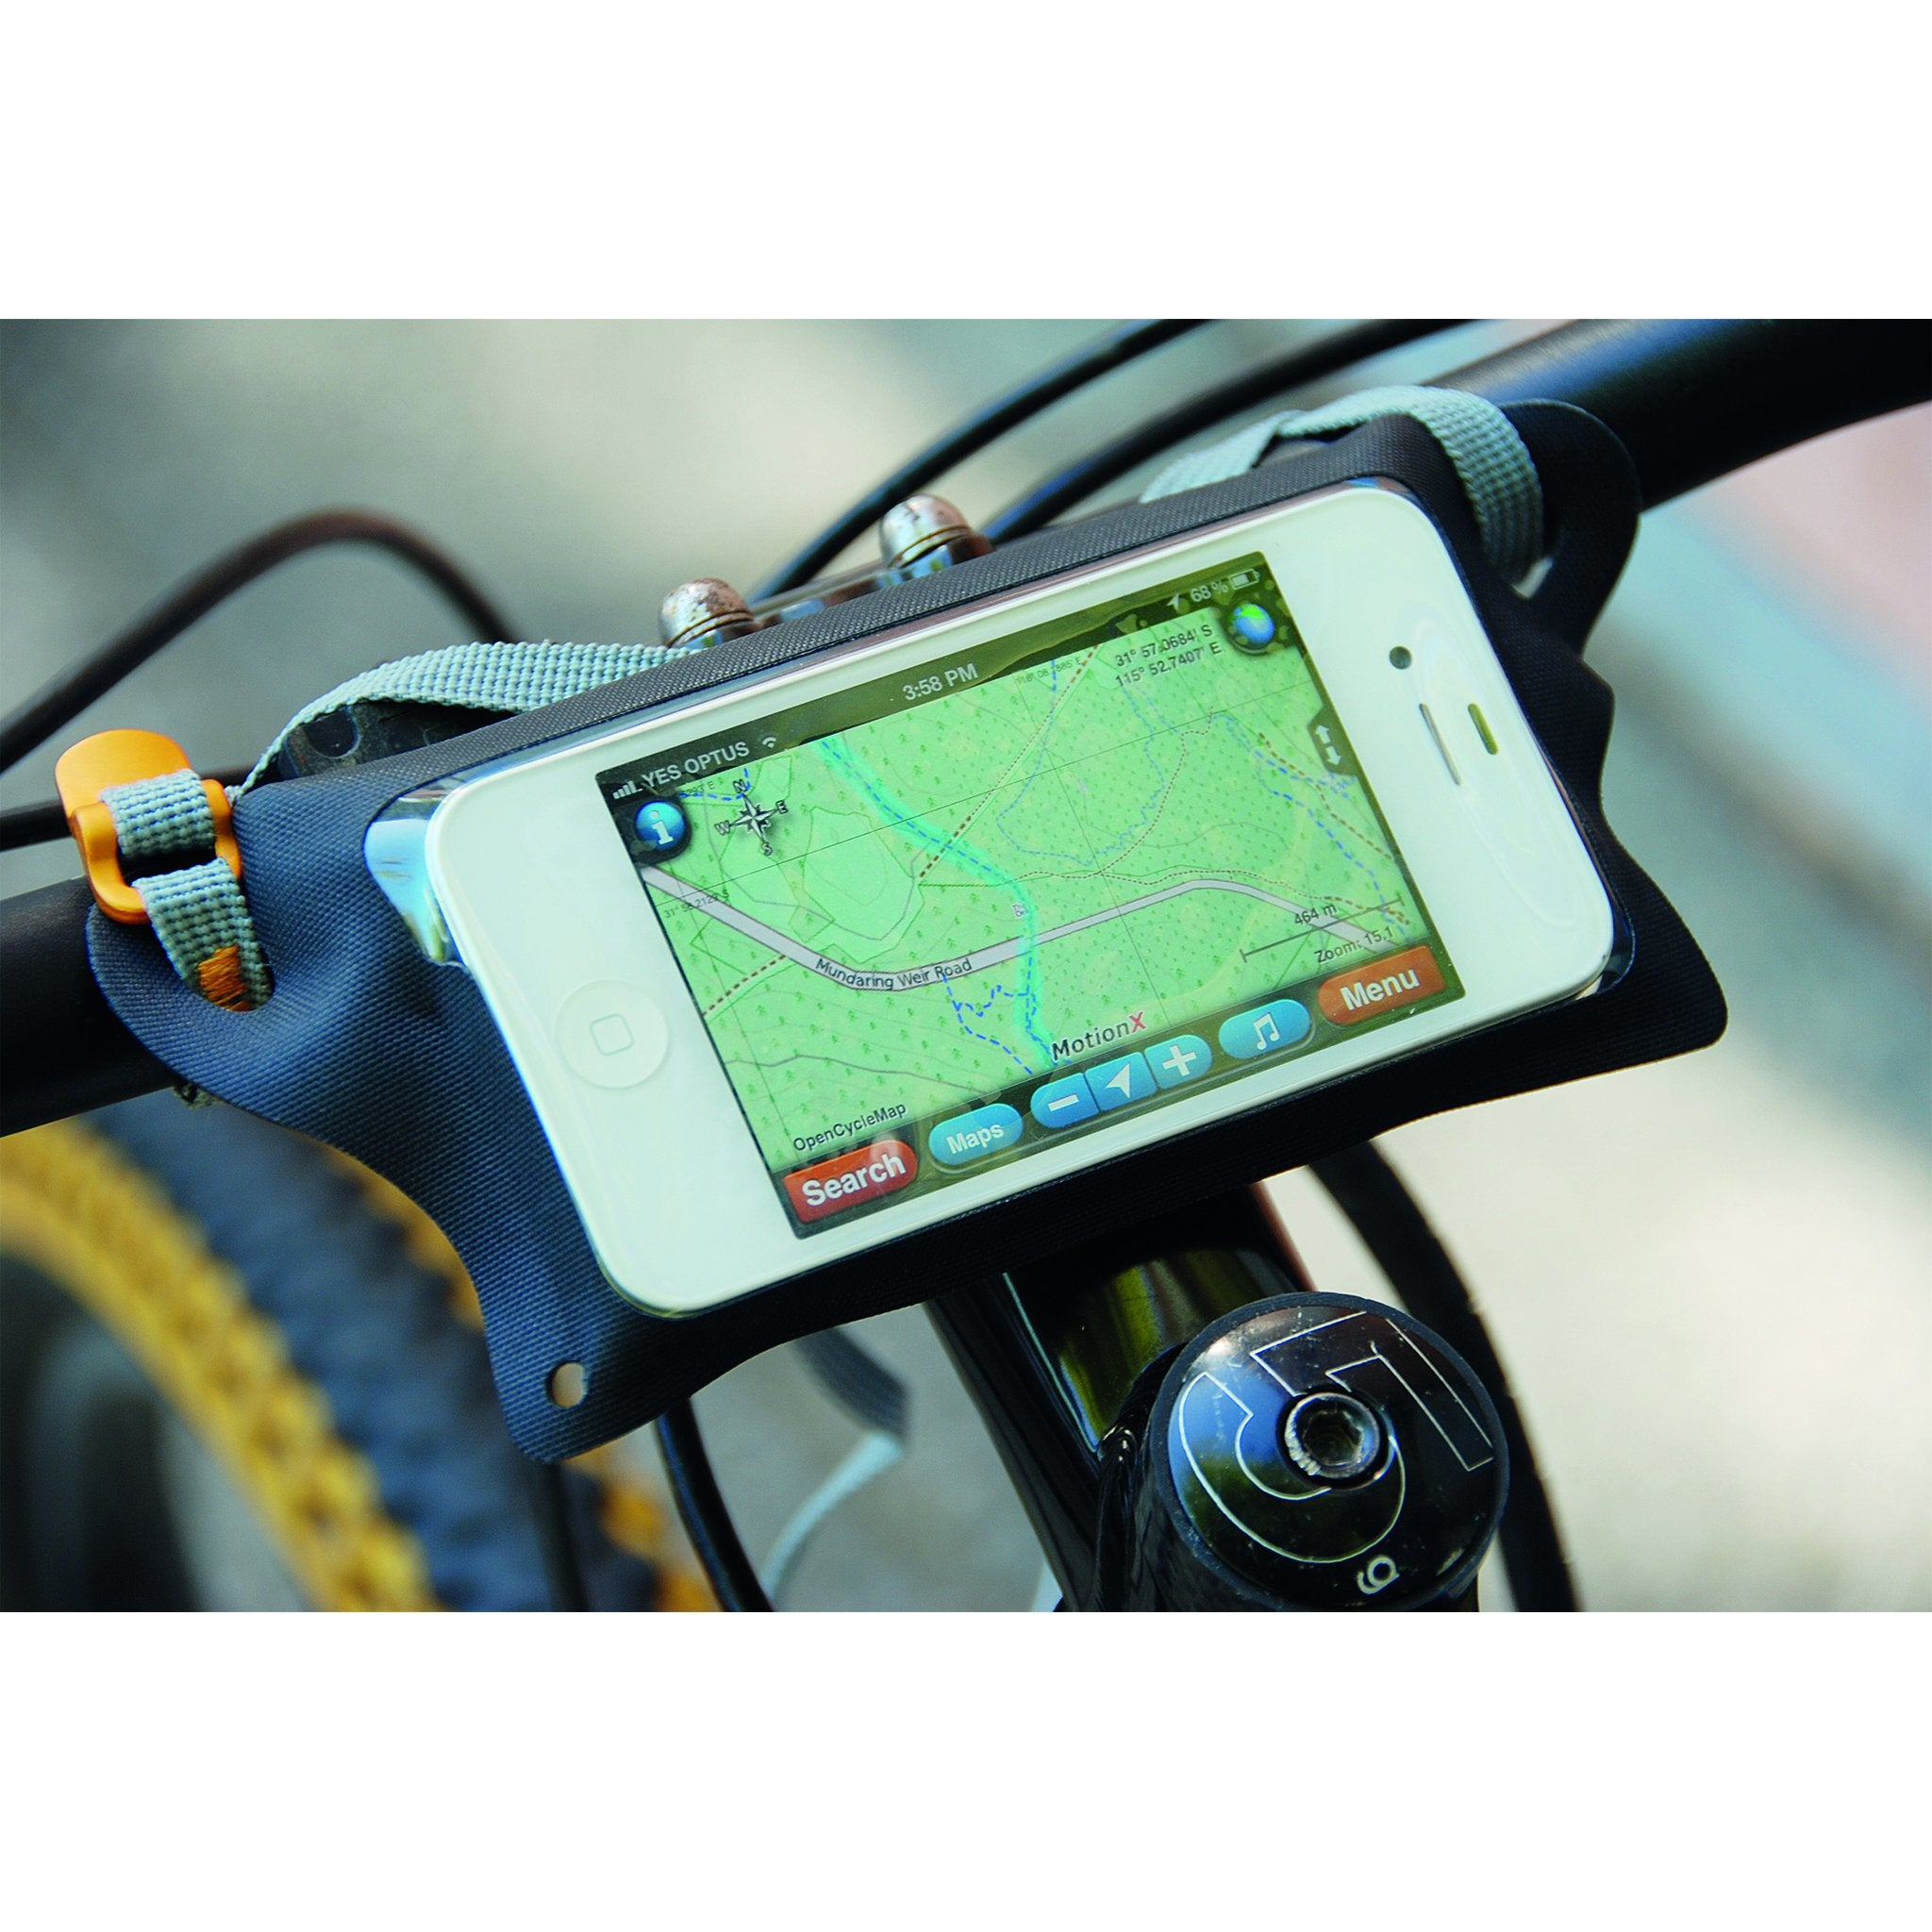 TPU Waterproof Case for Phone on Bike _ iPhone _ black